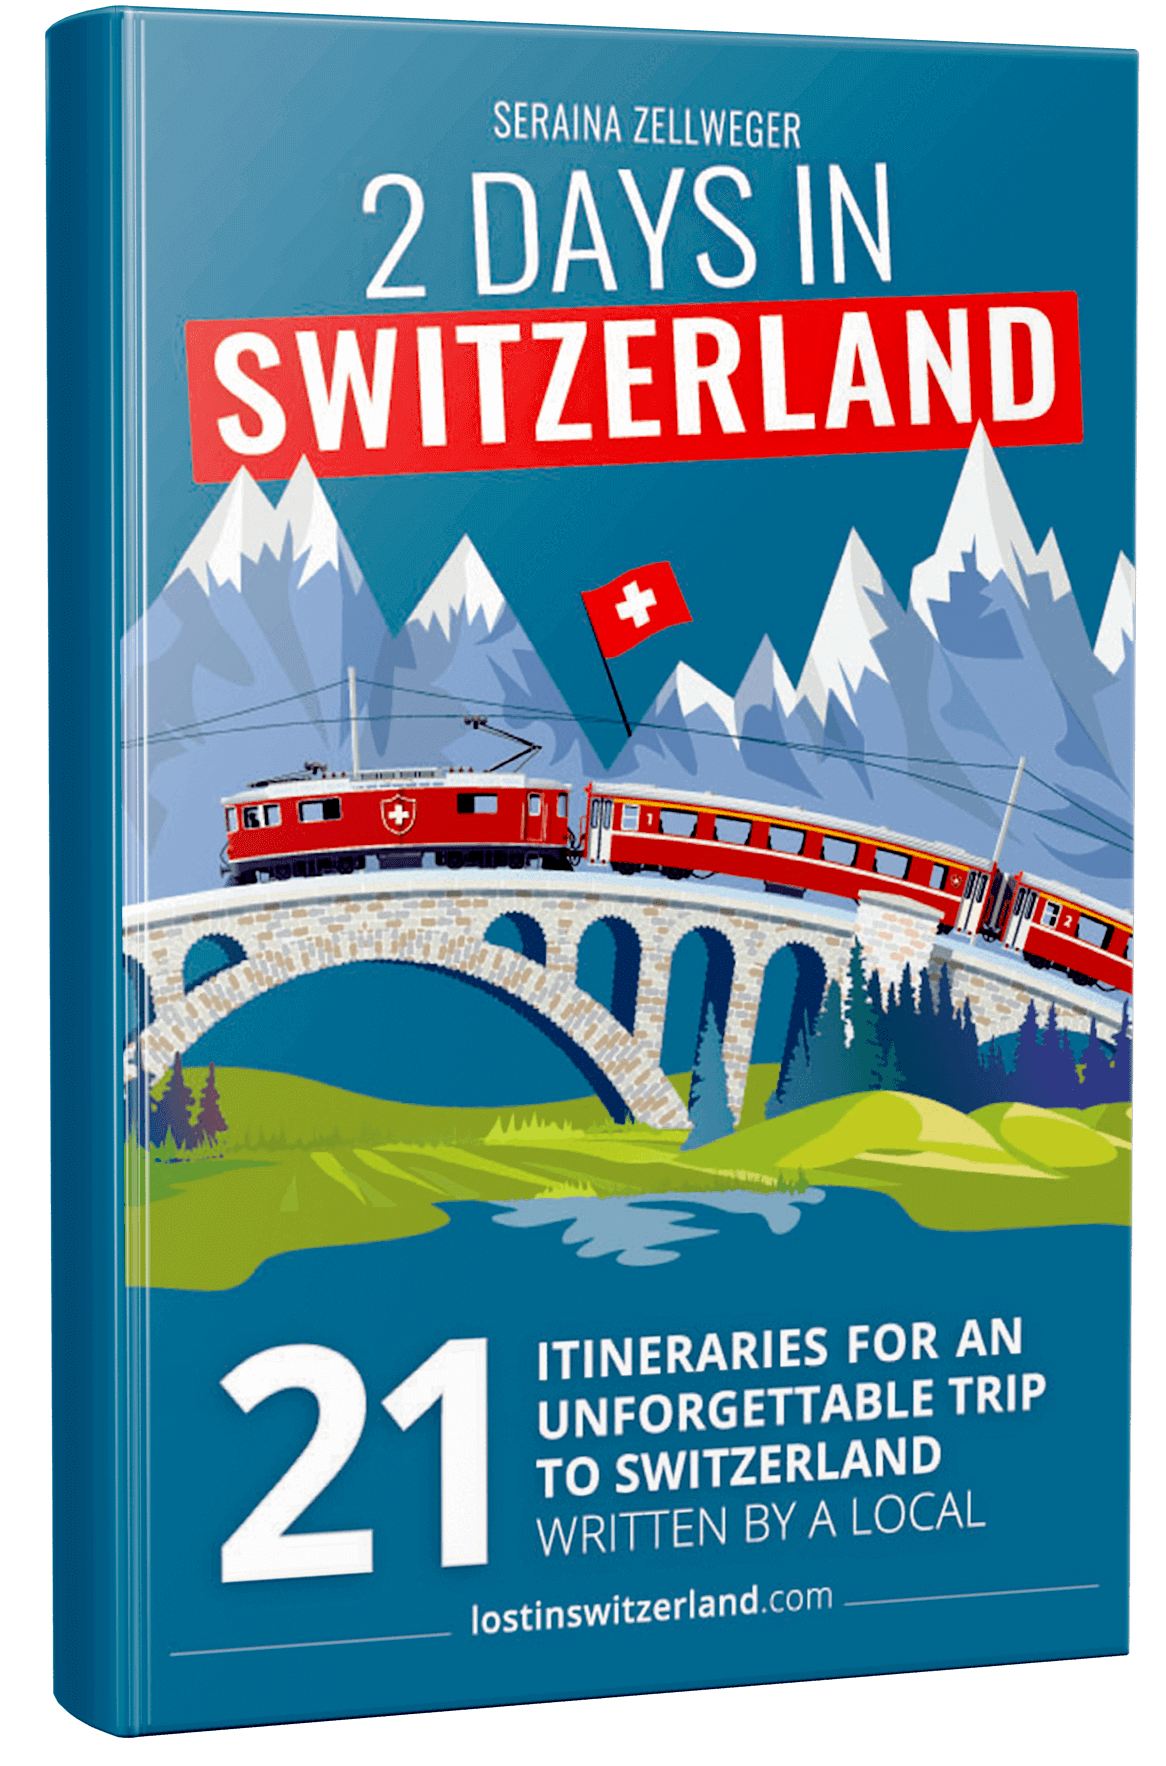 When you have a limited amount of time in a country, it's hard to figure out where to go and what to do. This guide contains 21 detailed itineraries - all doable in two full days - to help you plan your trip.